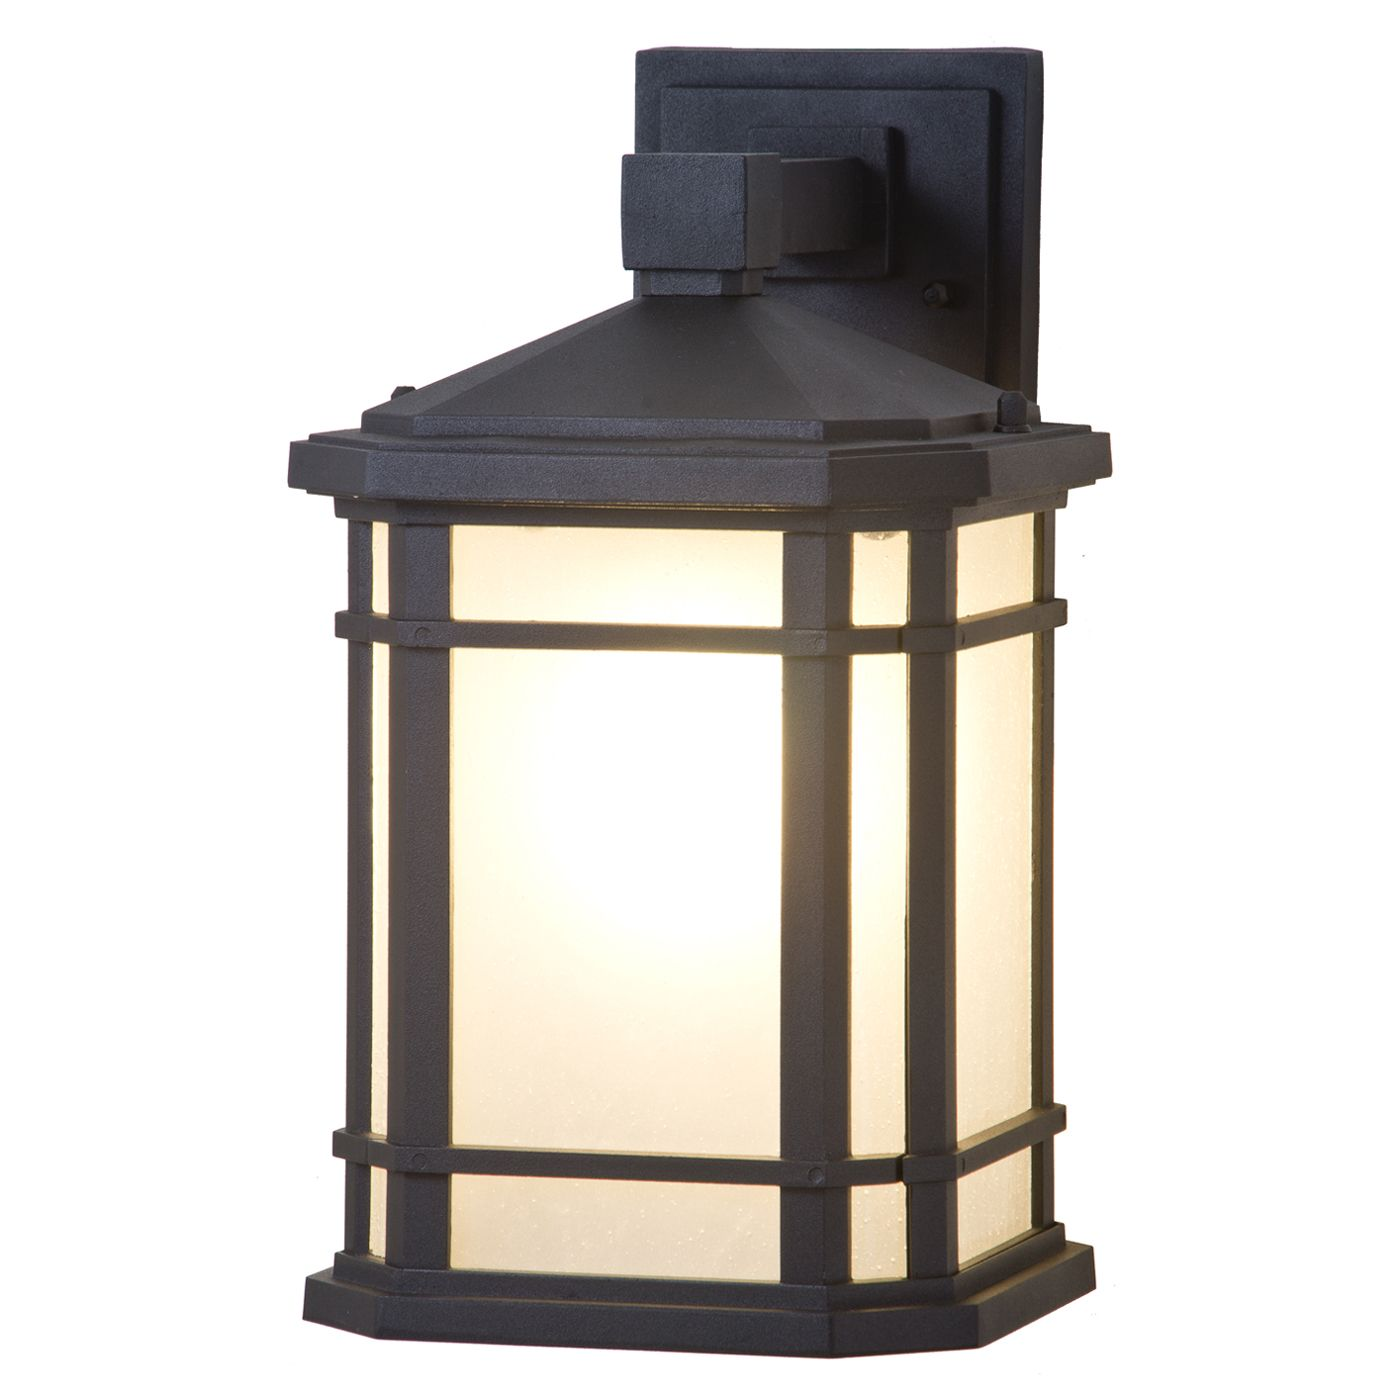 Dvi Lighting Dvp1420 Cardiff Outdoor Wall Sconce At Lowe S Canada Find Our Selection Of